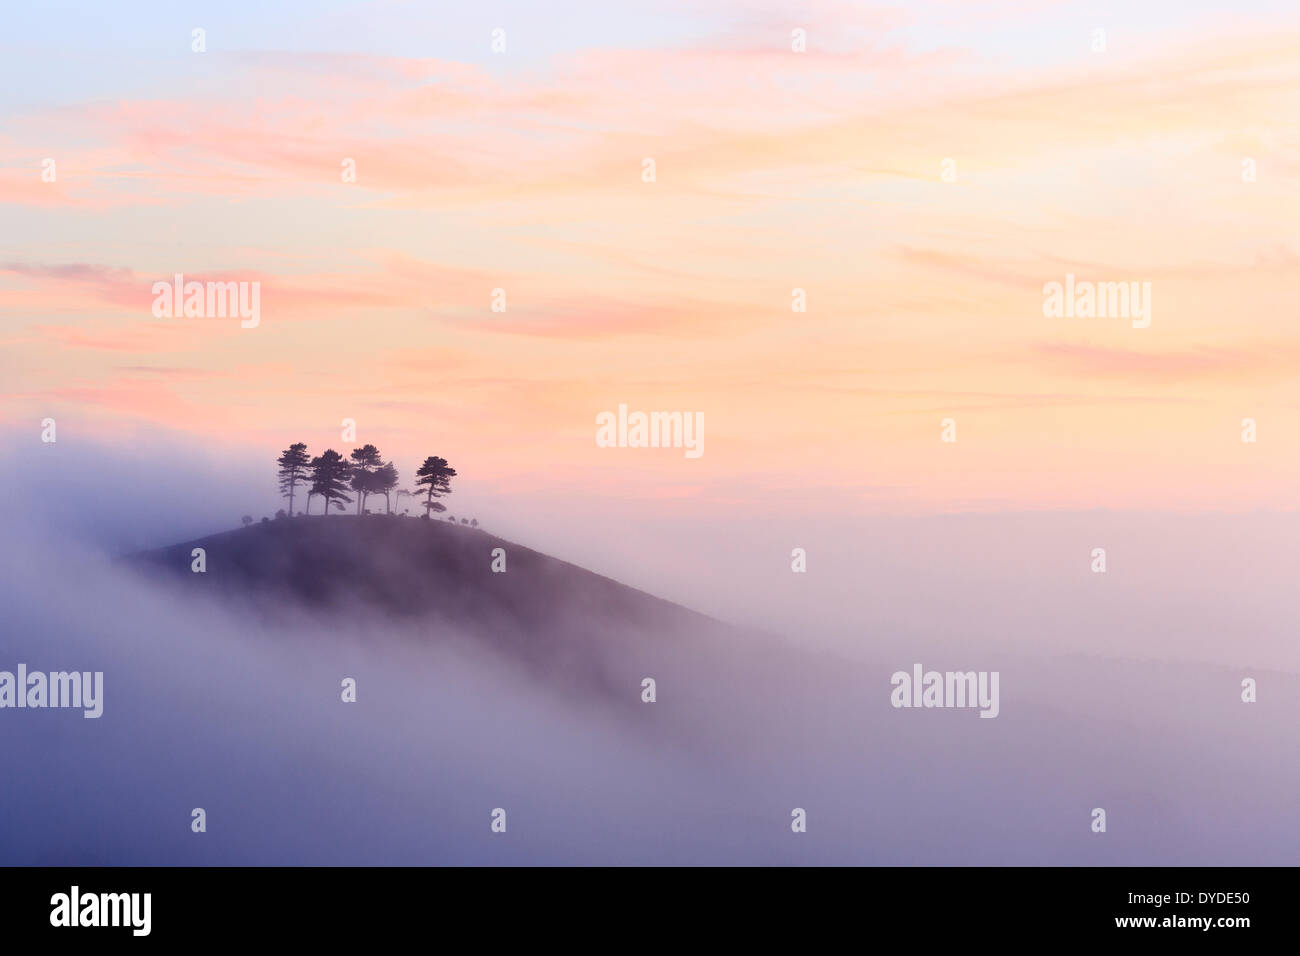 Colmer's Hill in Dorset on a misty autumn morning. Stock Photo